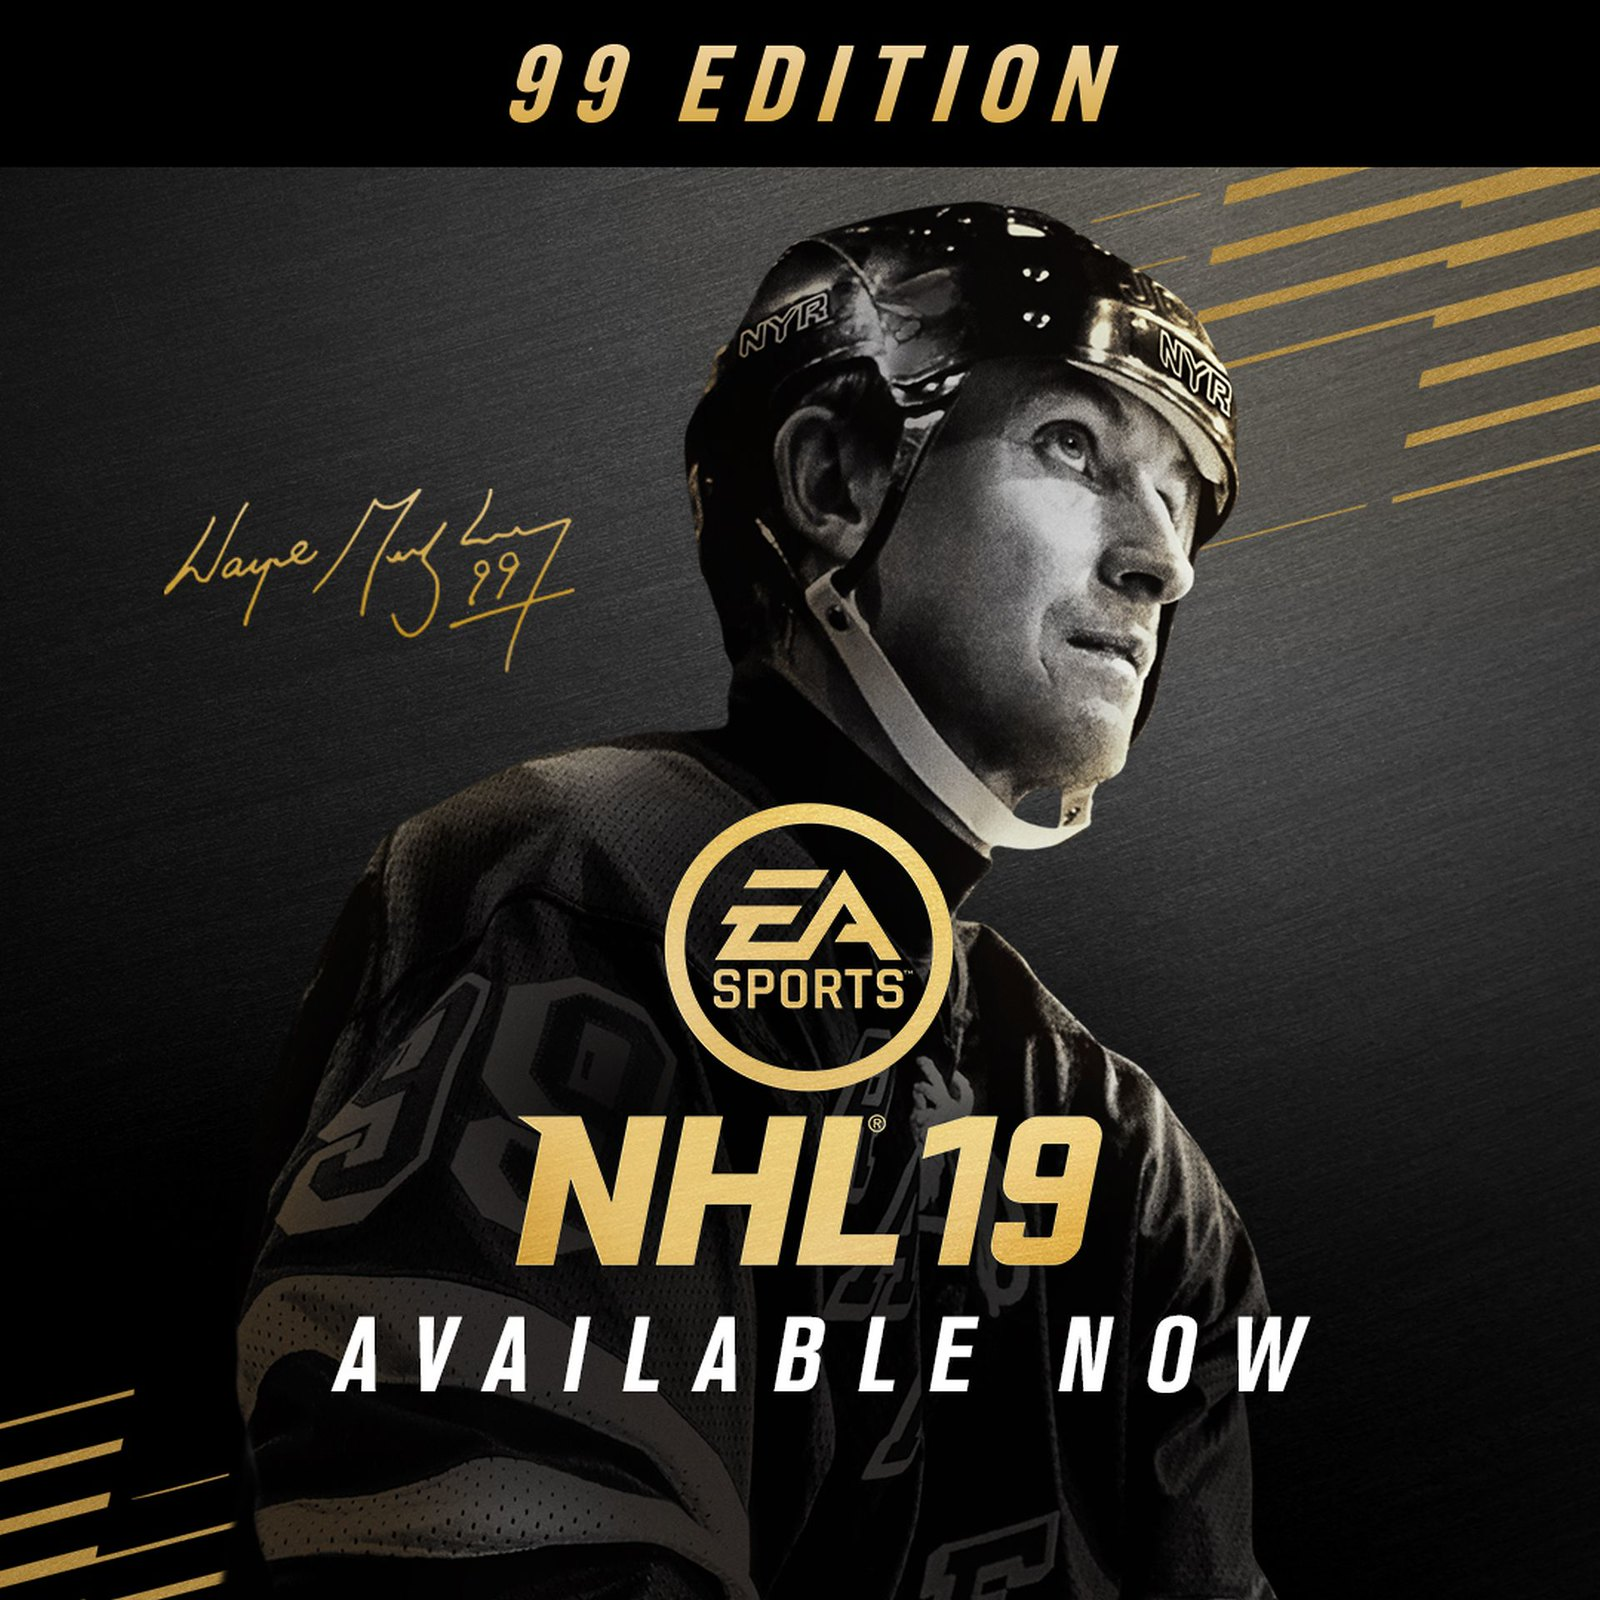 99editioncoverreveal